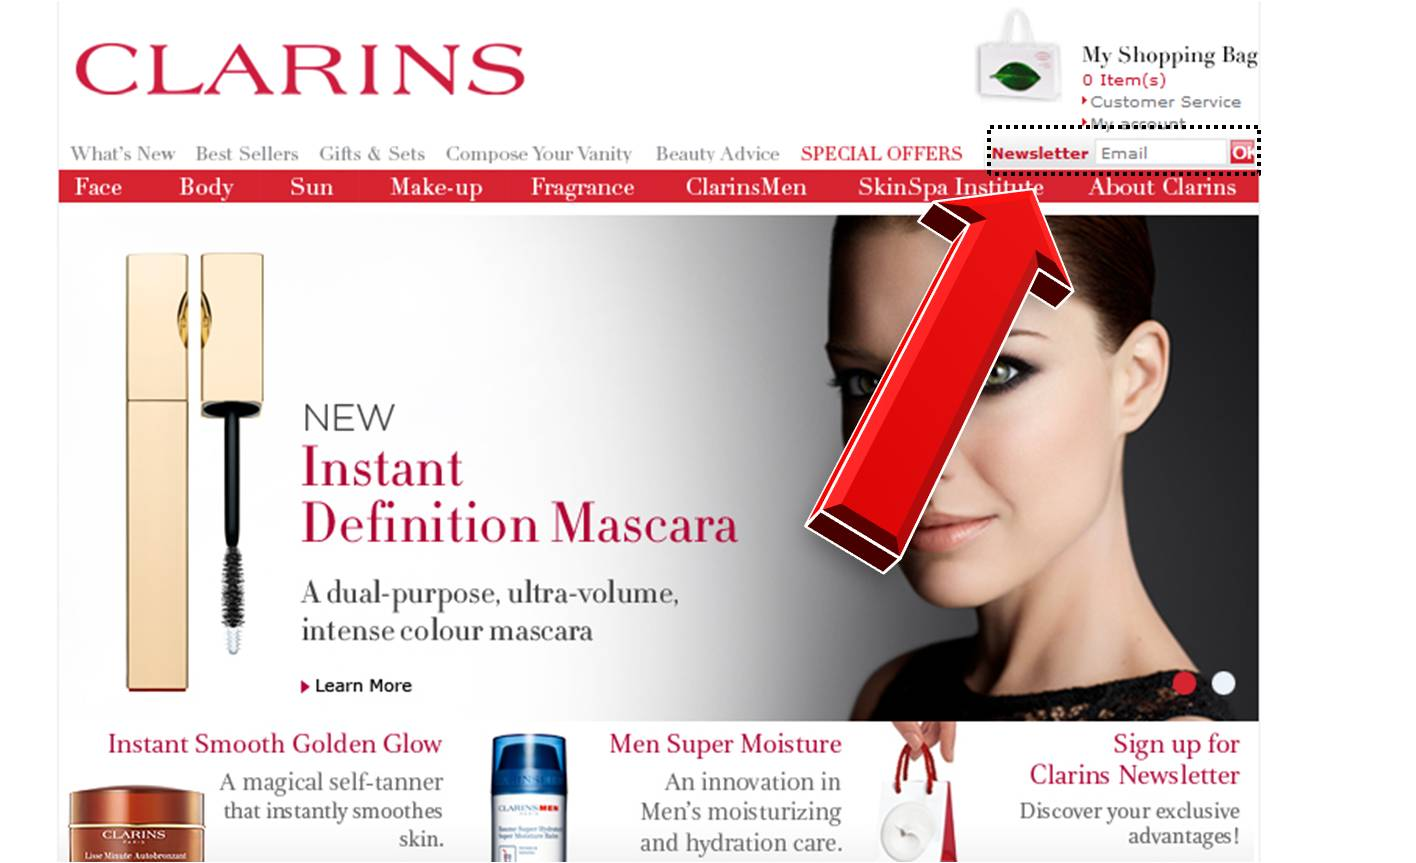 Save money on things you want with a Clarins UK promo code or coupon. 26 Clarins UK coupons now on RetailMeNot.